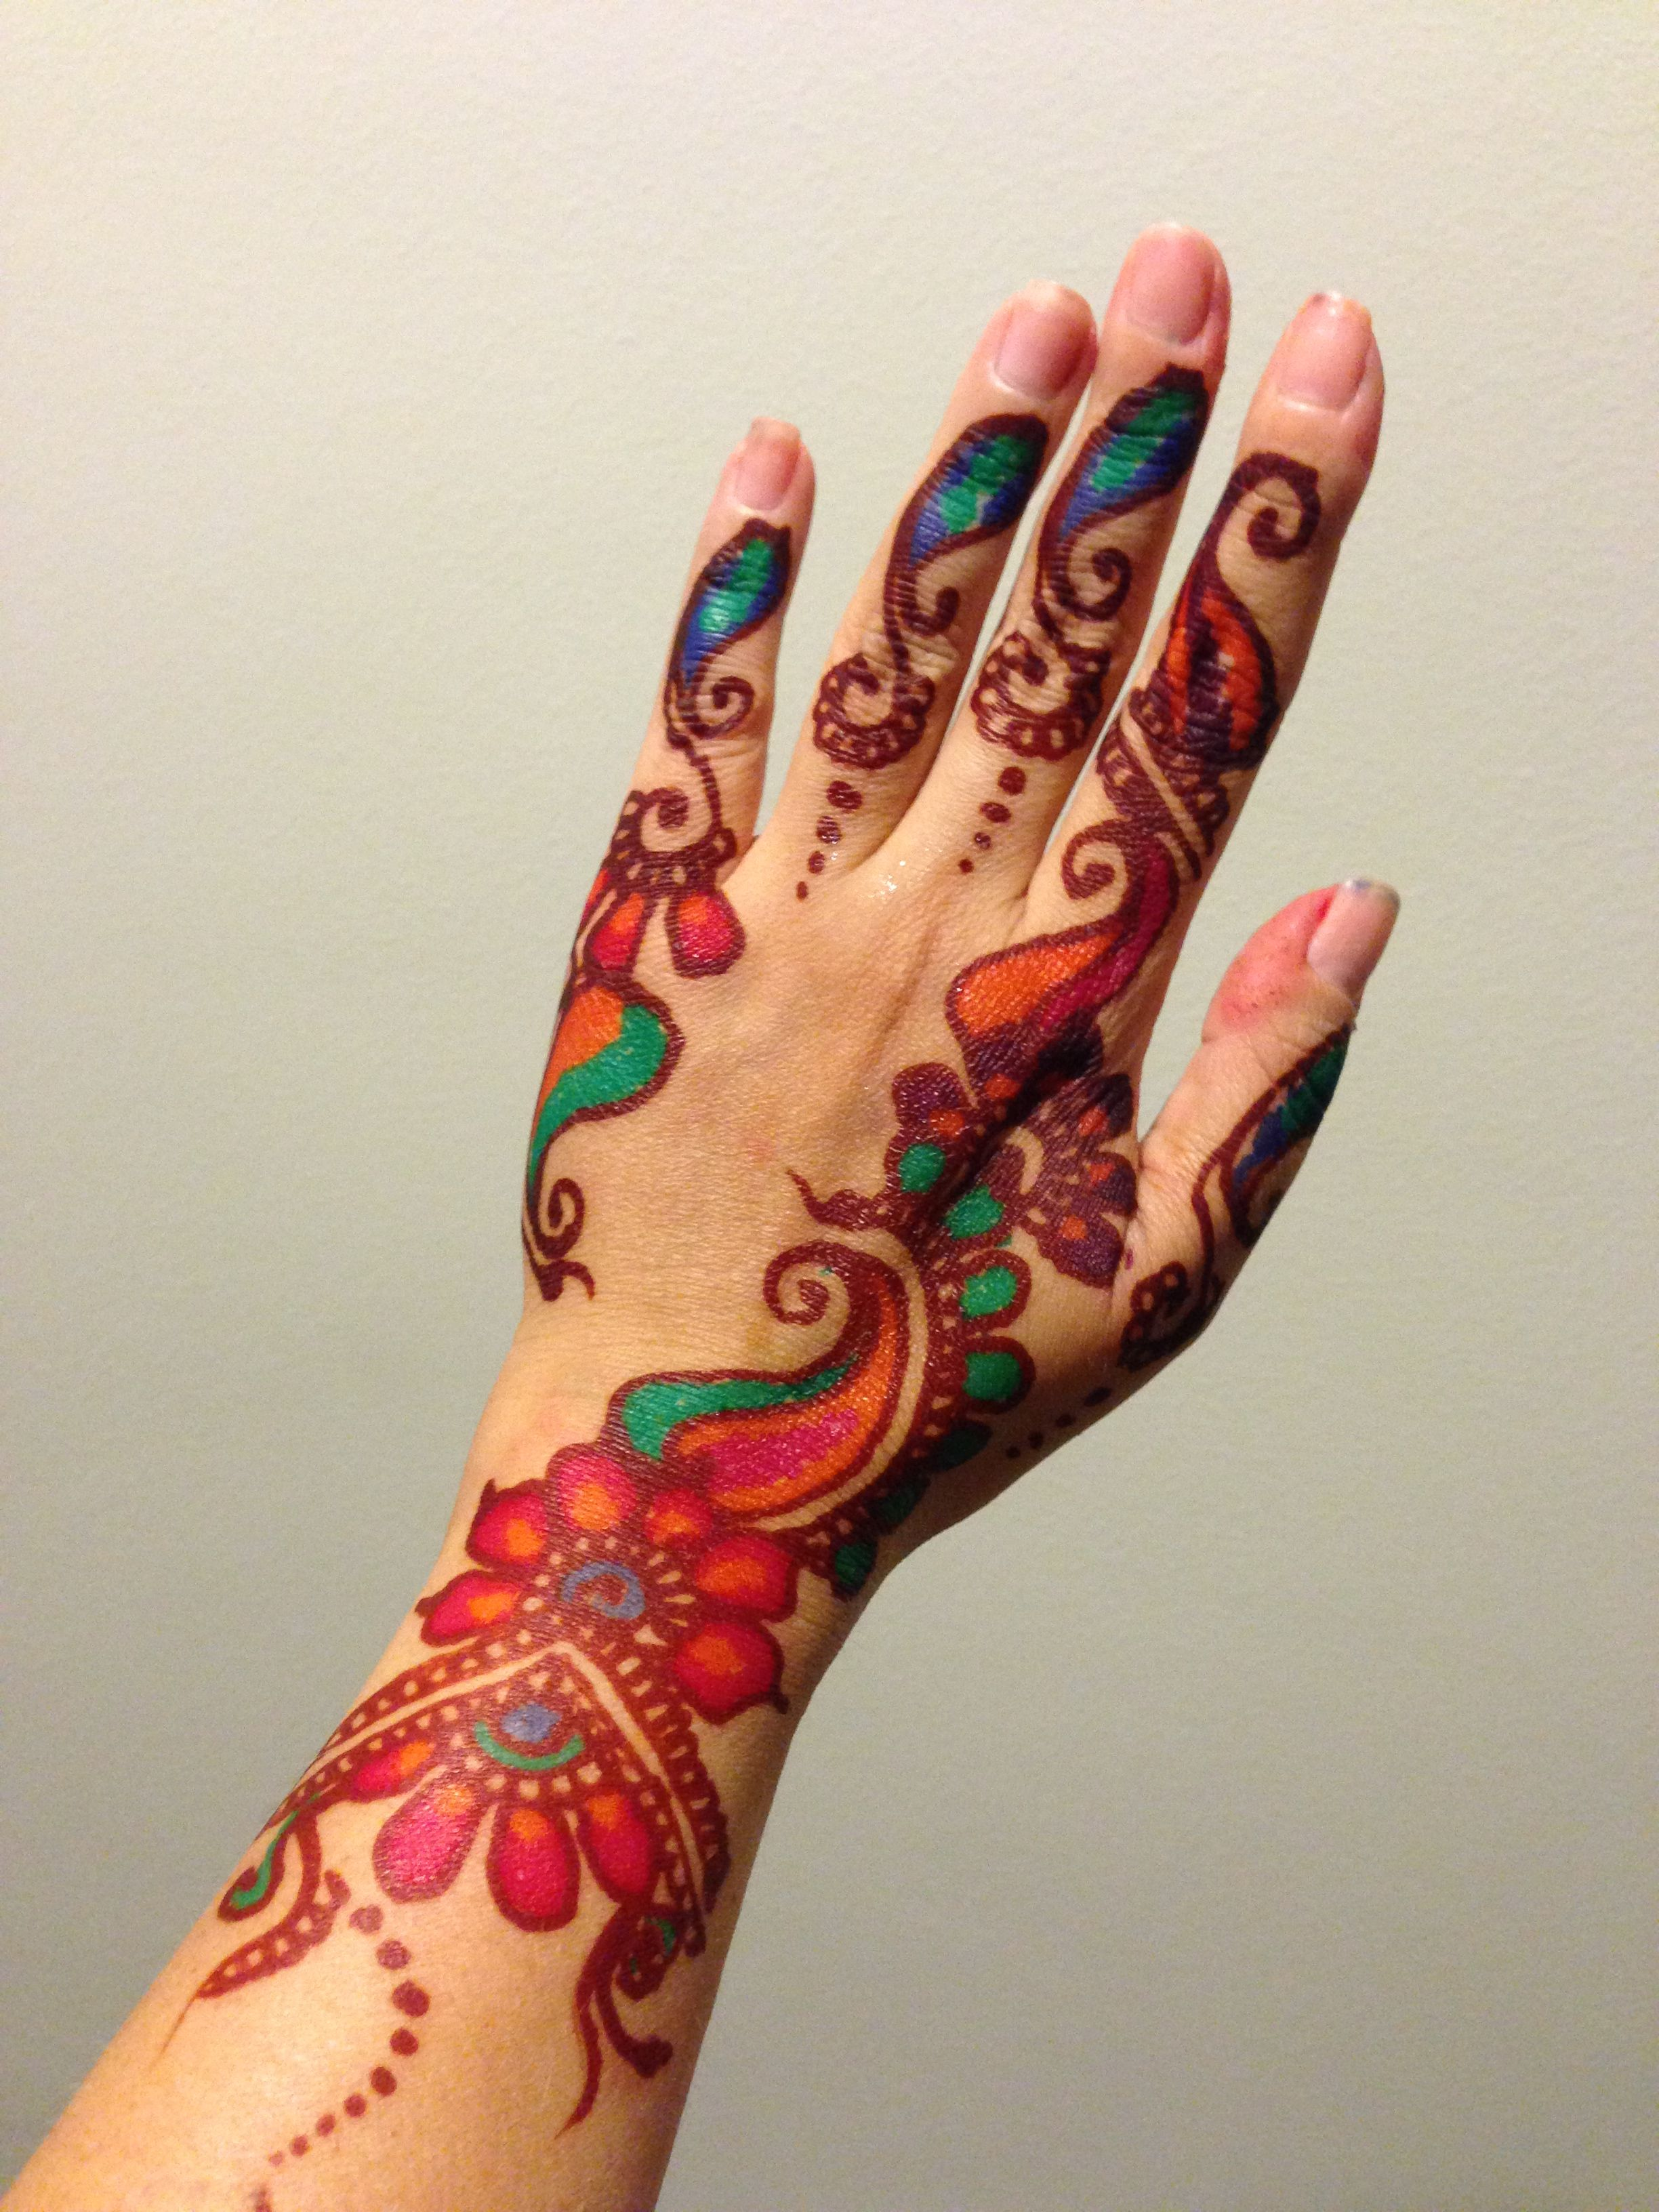 25 Trendy Henna Tattoo Designs To Try For Your Hands: My Holiday Multi-colored Henna Tattoo. Got It Done At The